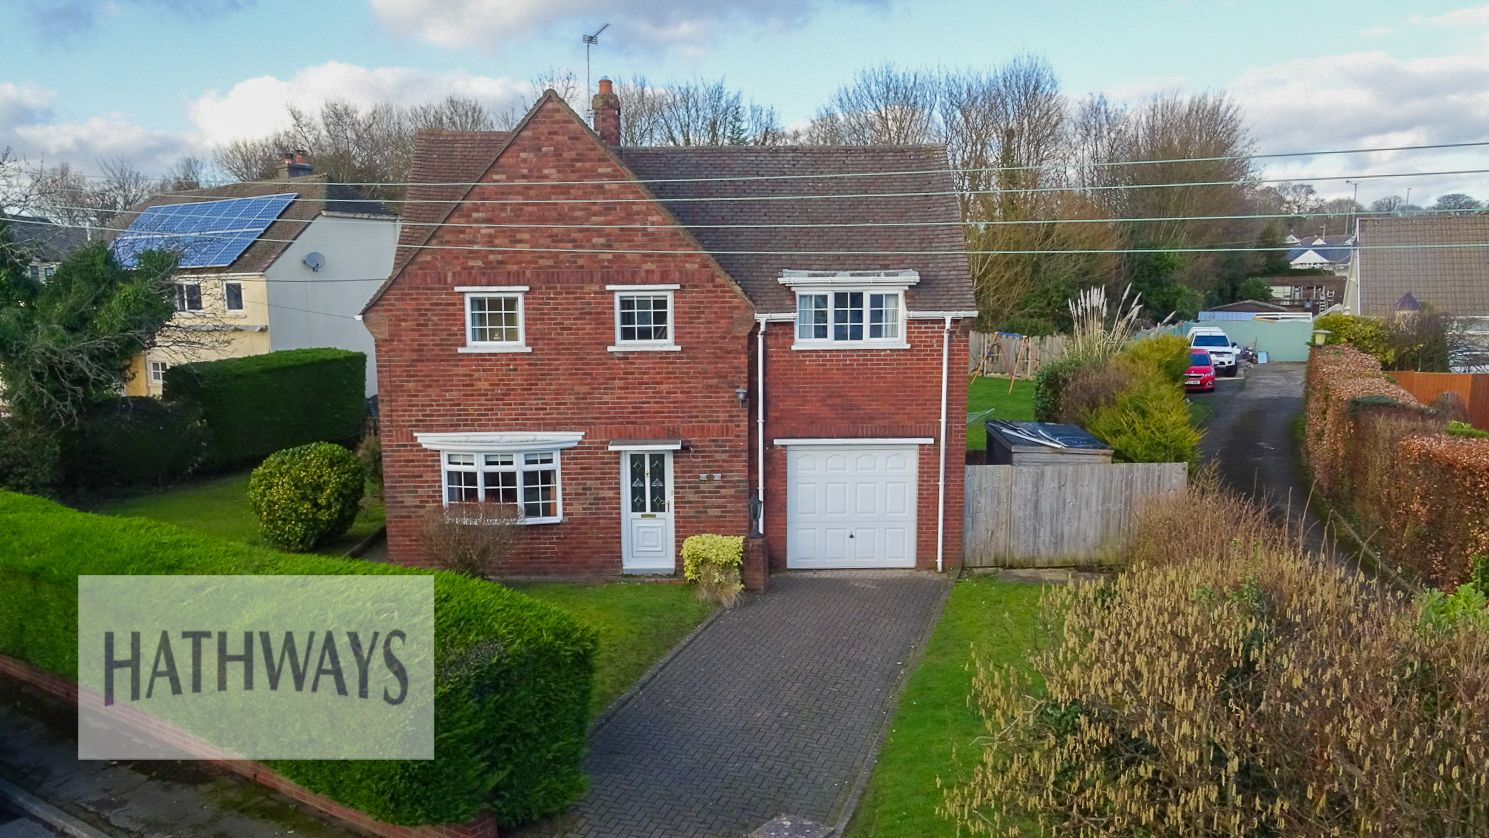 3 bed house for sale in Ashford Close - Property Image 1